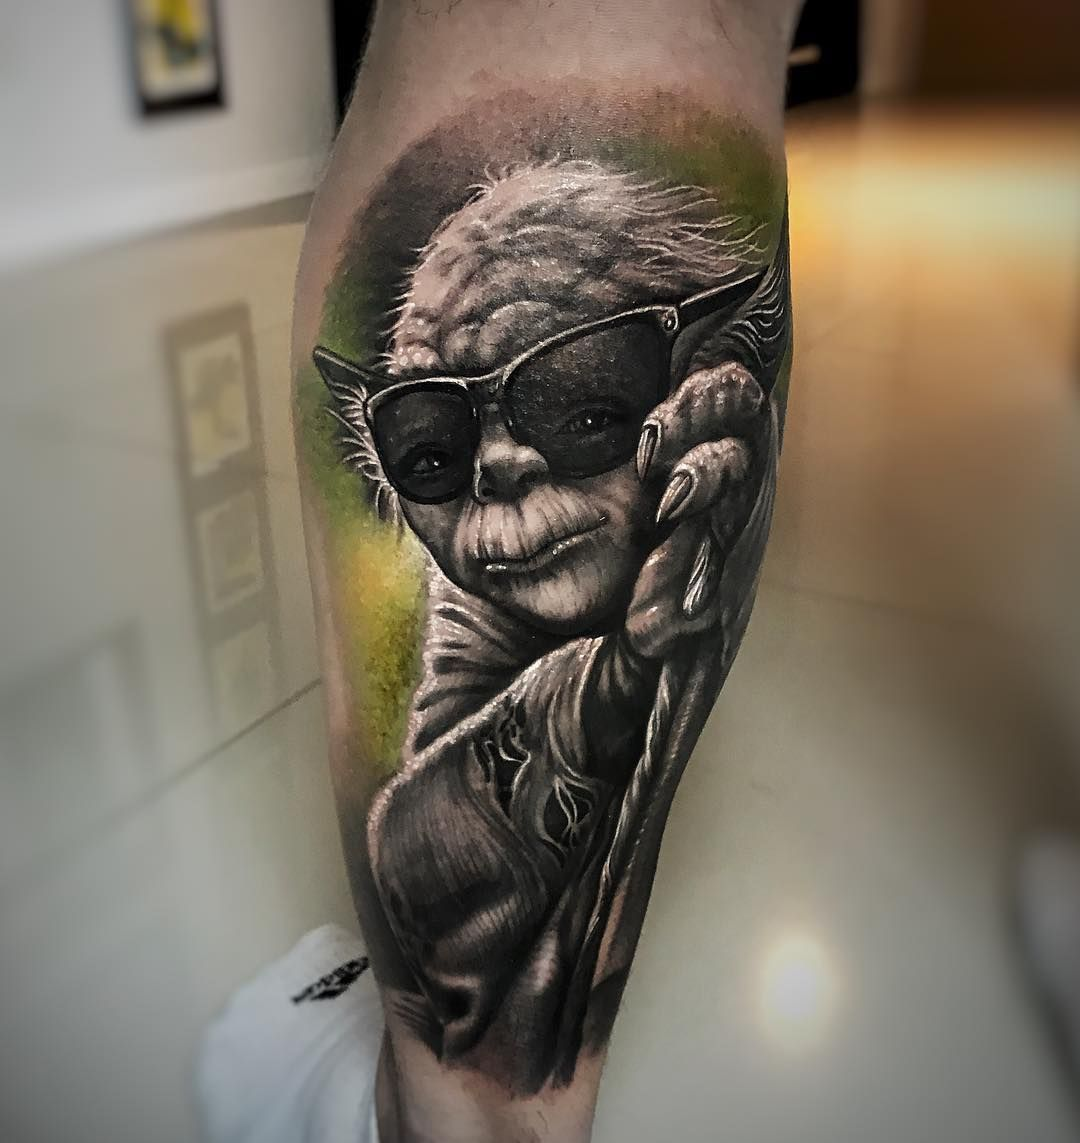 Yoda Tattoo Made By Ezequiel Viapiano In Argentina You Can Find